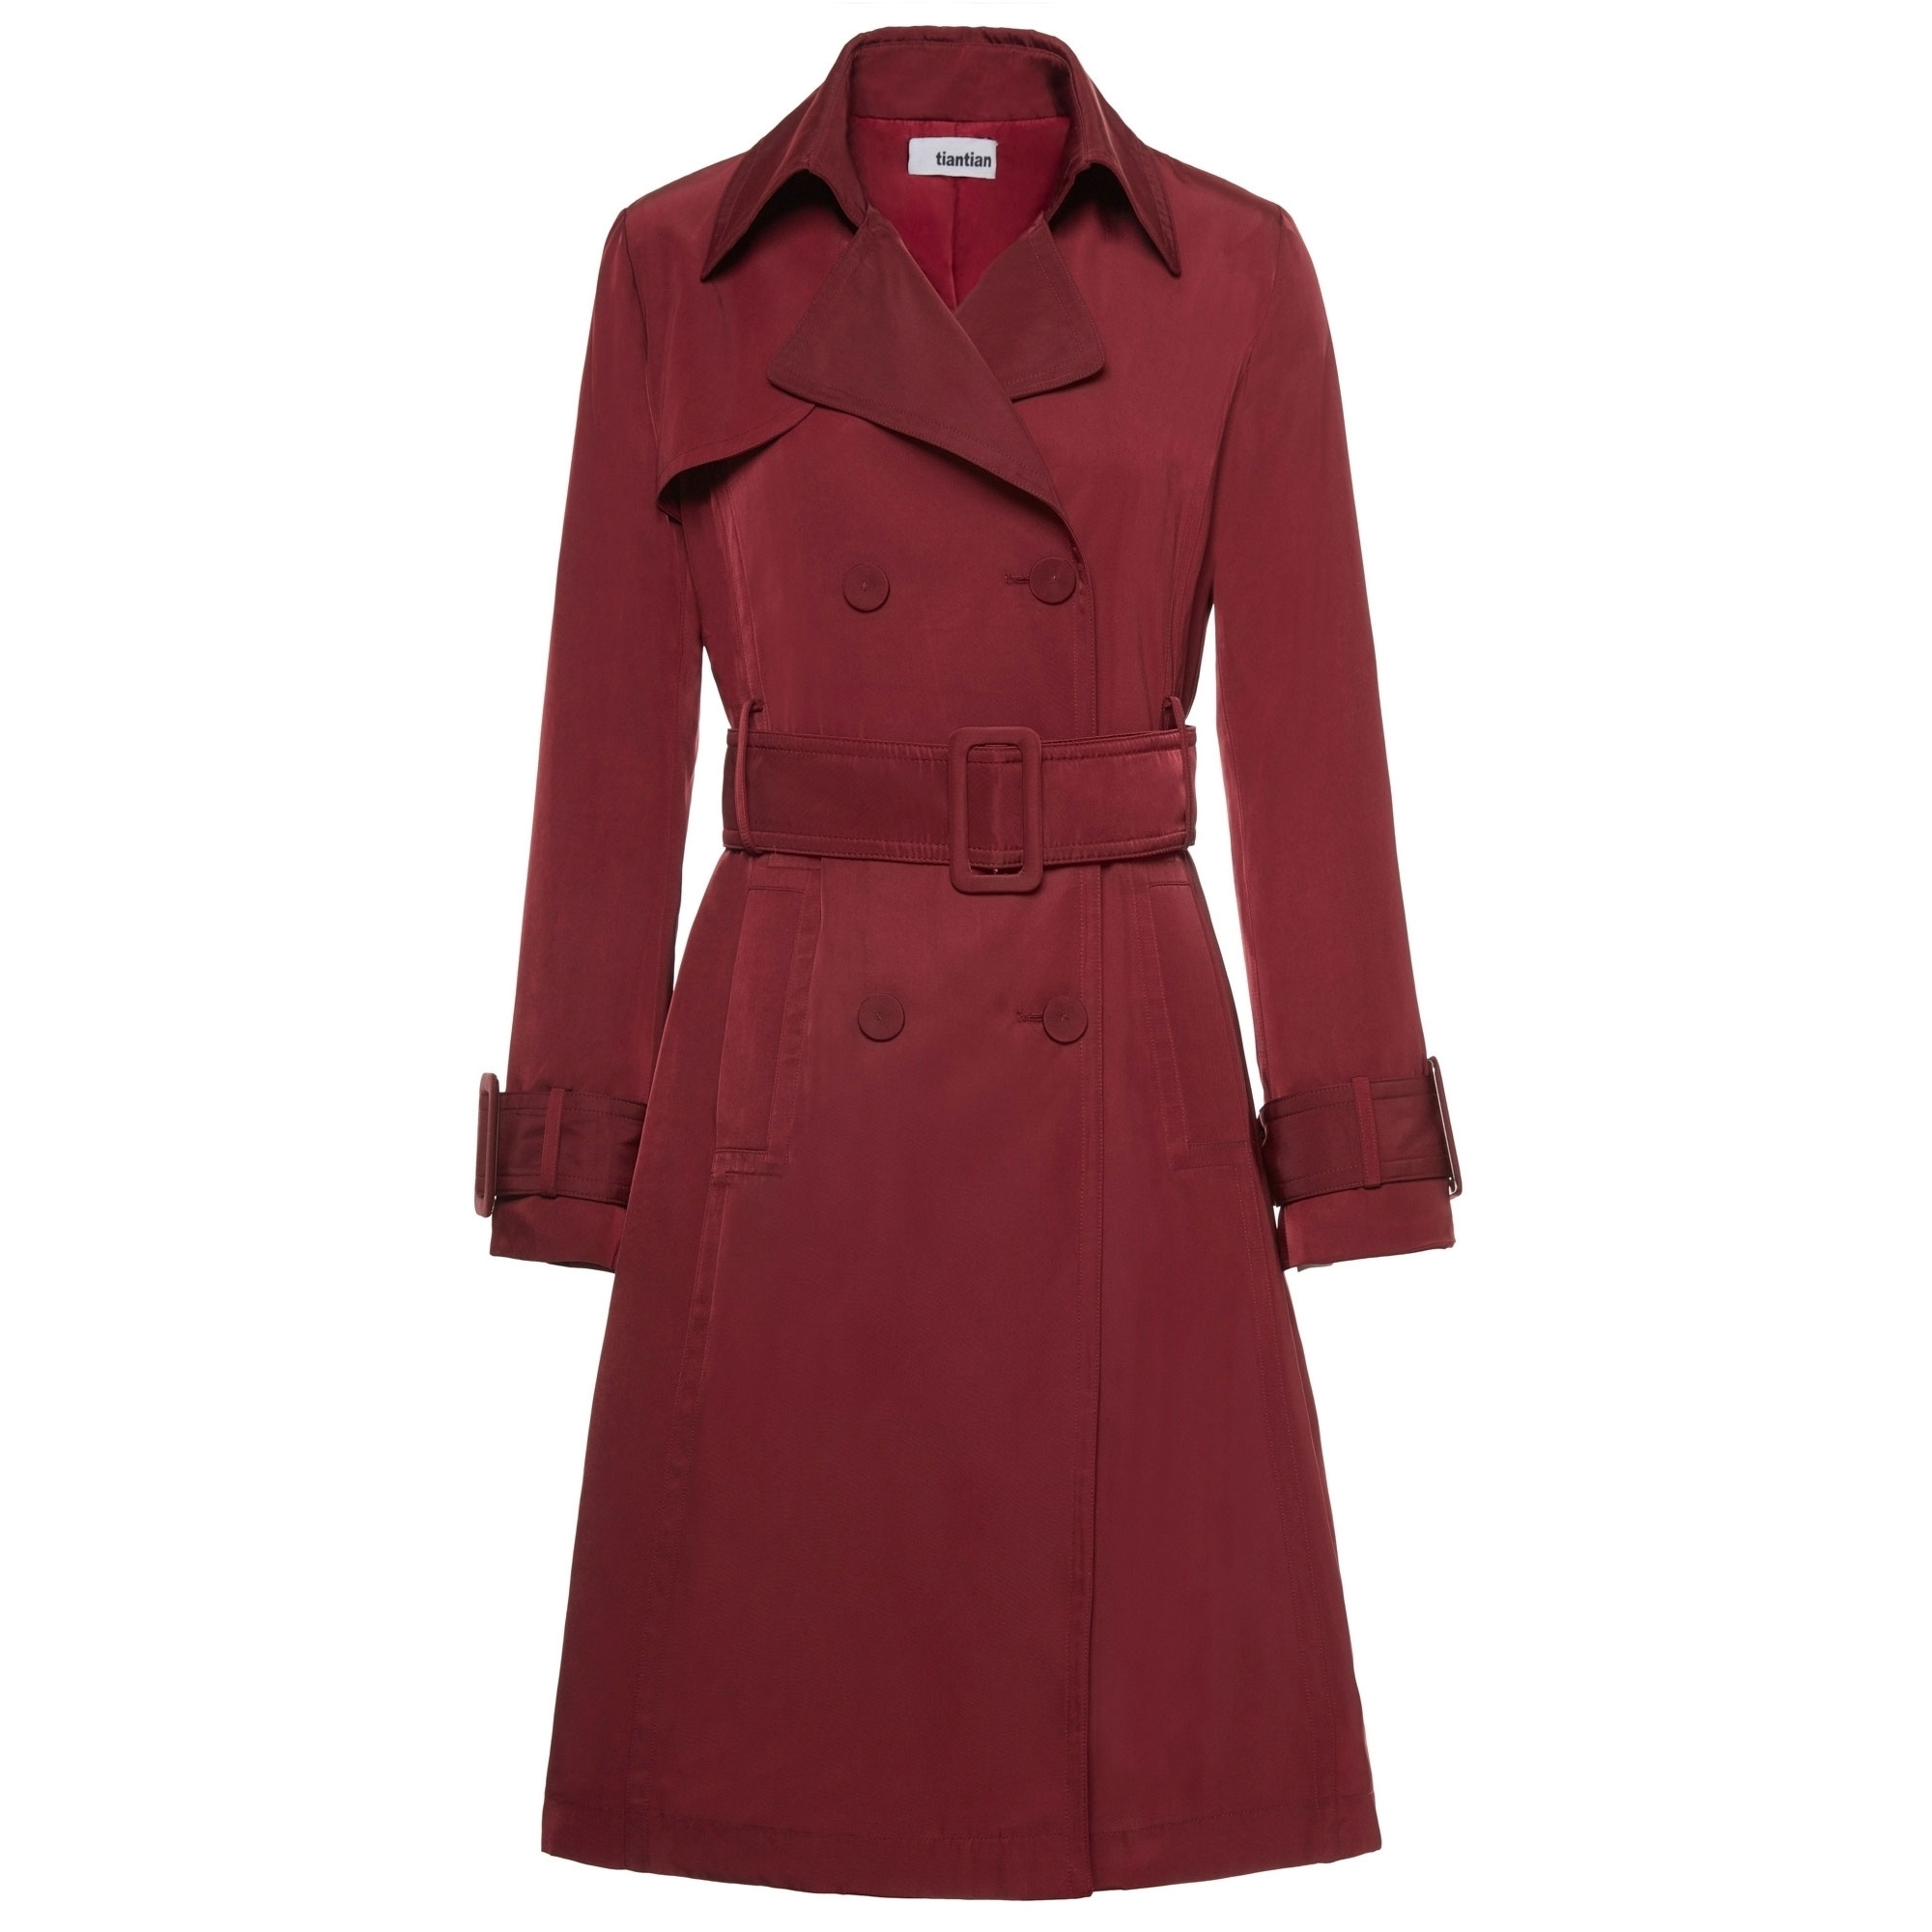 71427f0e2807a Burgundy Double Breasted Belted Trench Coat - WOMEN from Fashion ...